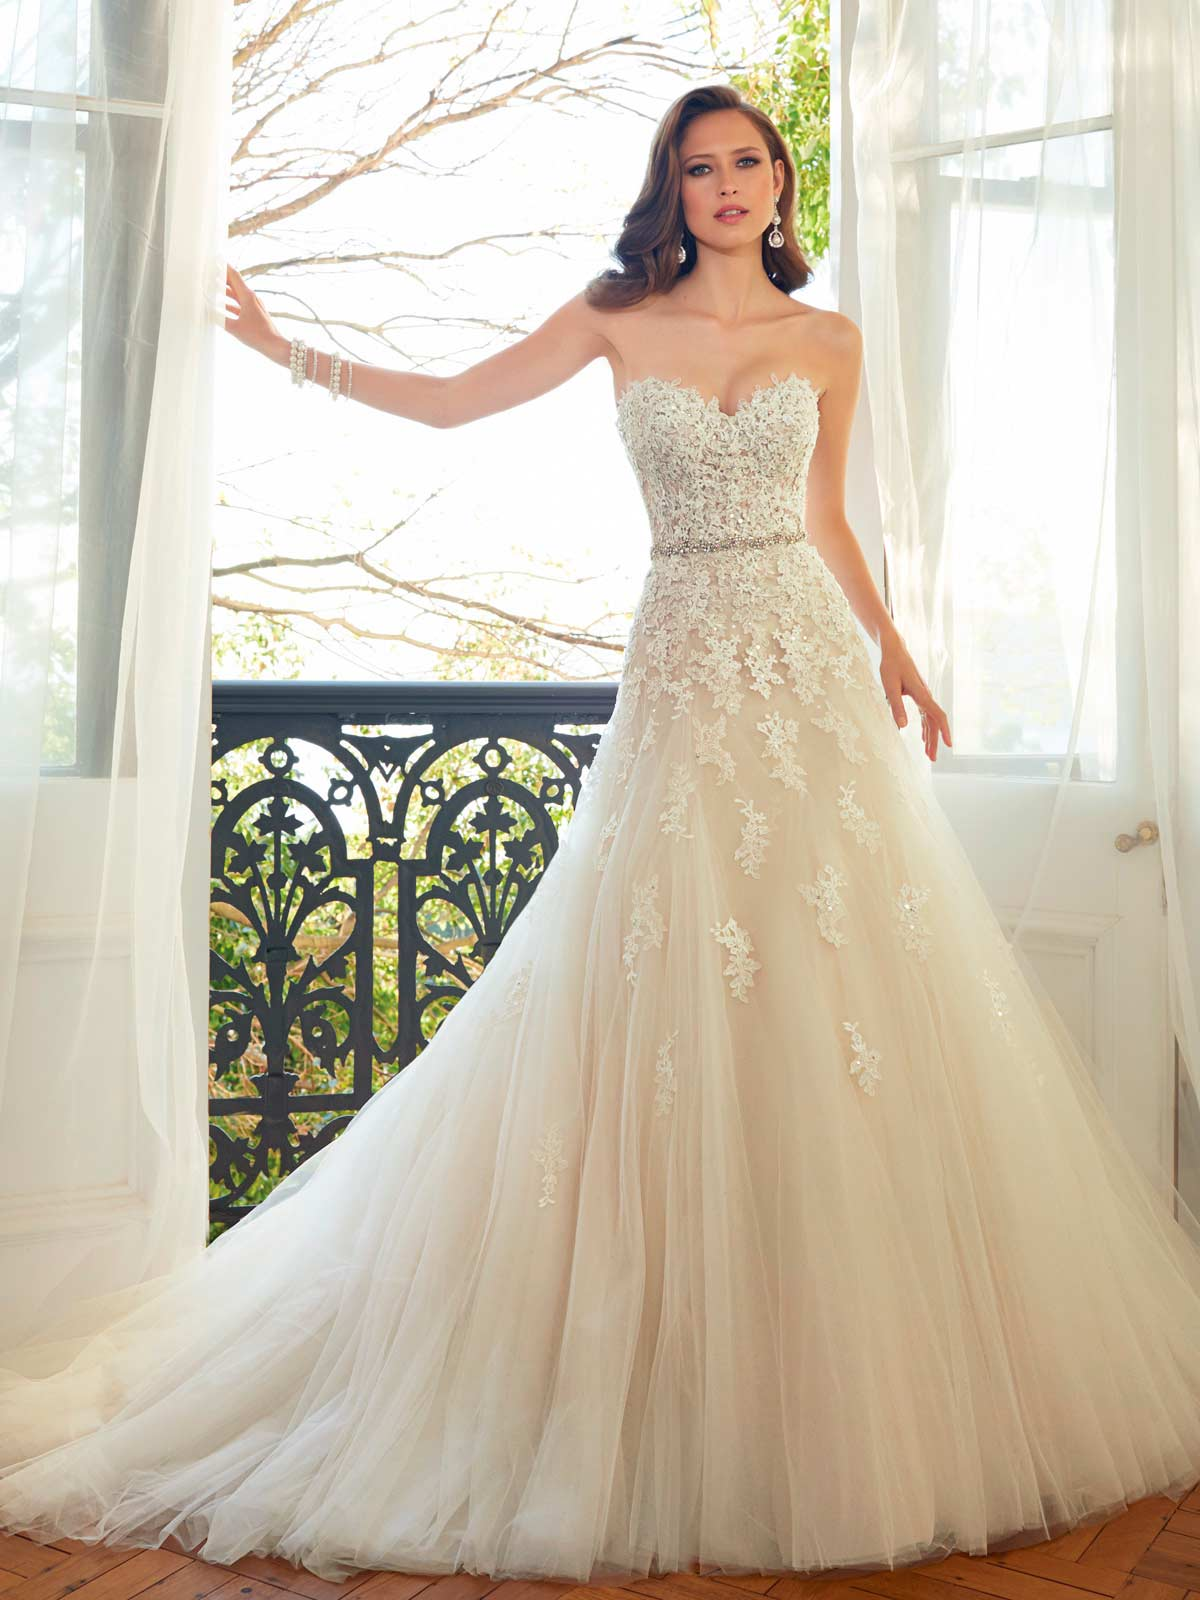 y11552_designerweddingdresses2015.jpg